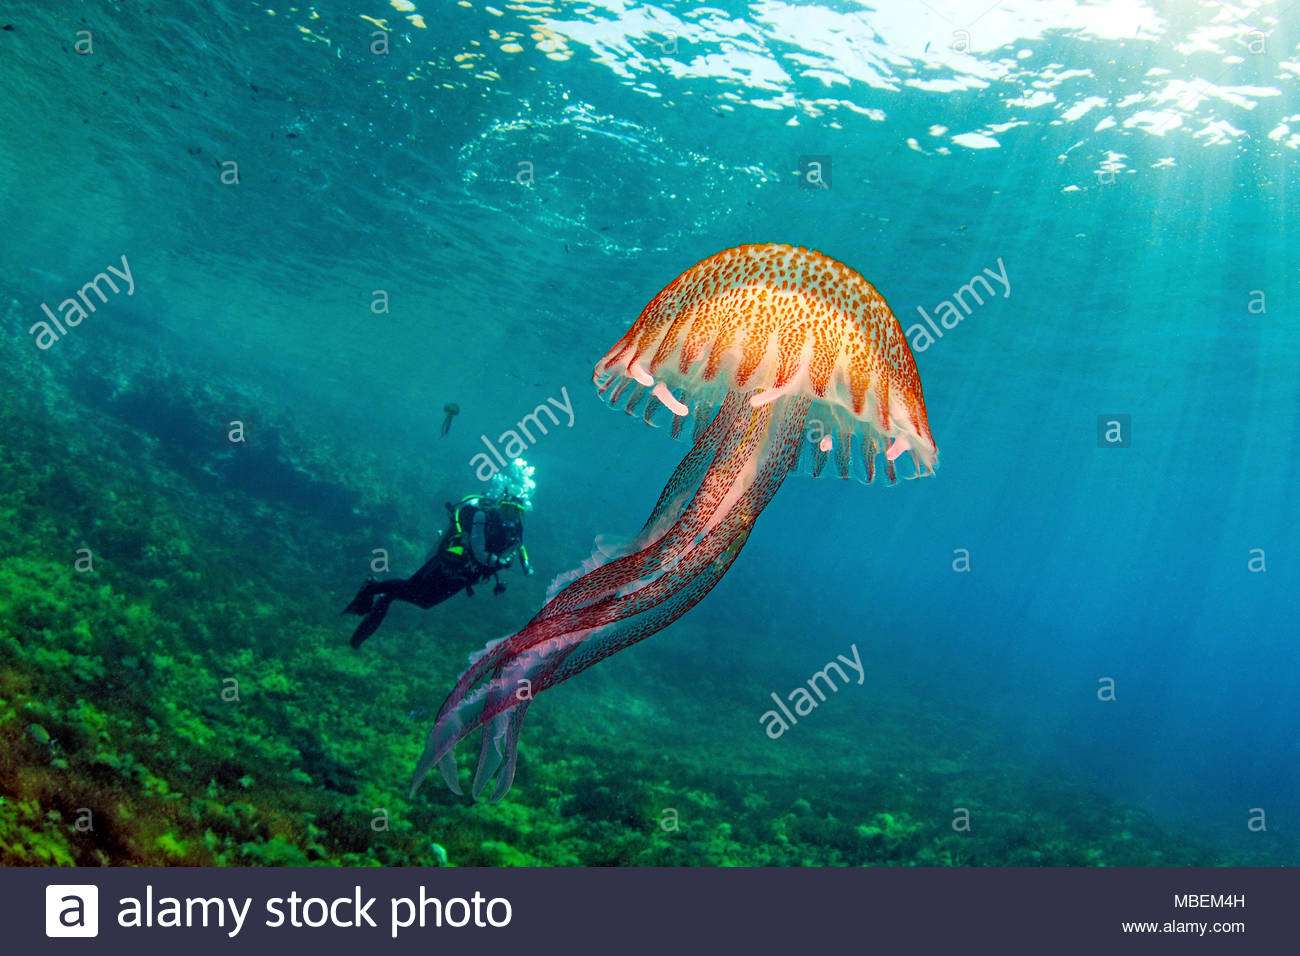 Scuba diver and fire jellyfish, mauve stinger, warty jelly (Pelagia noctiluca), dangerous, Gozo island, Malta - Stock Image